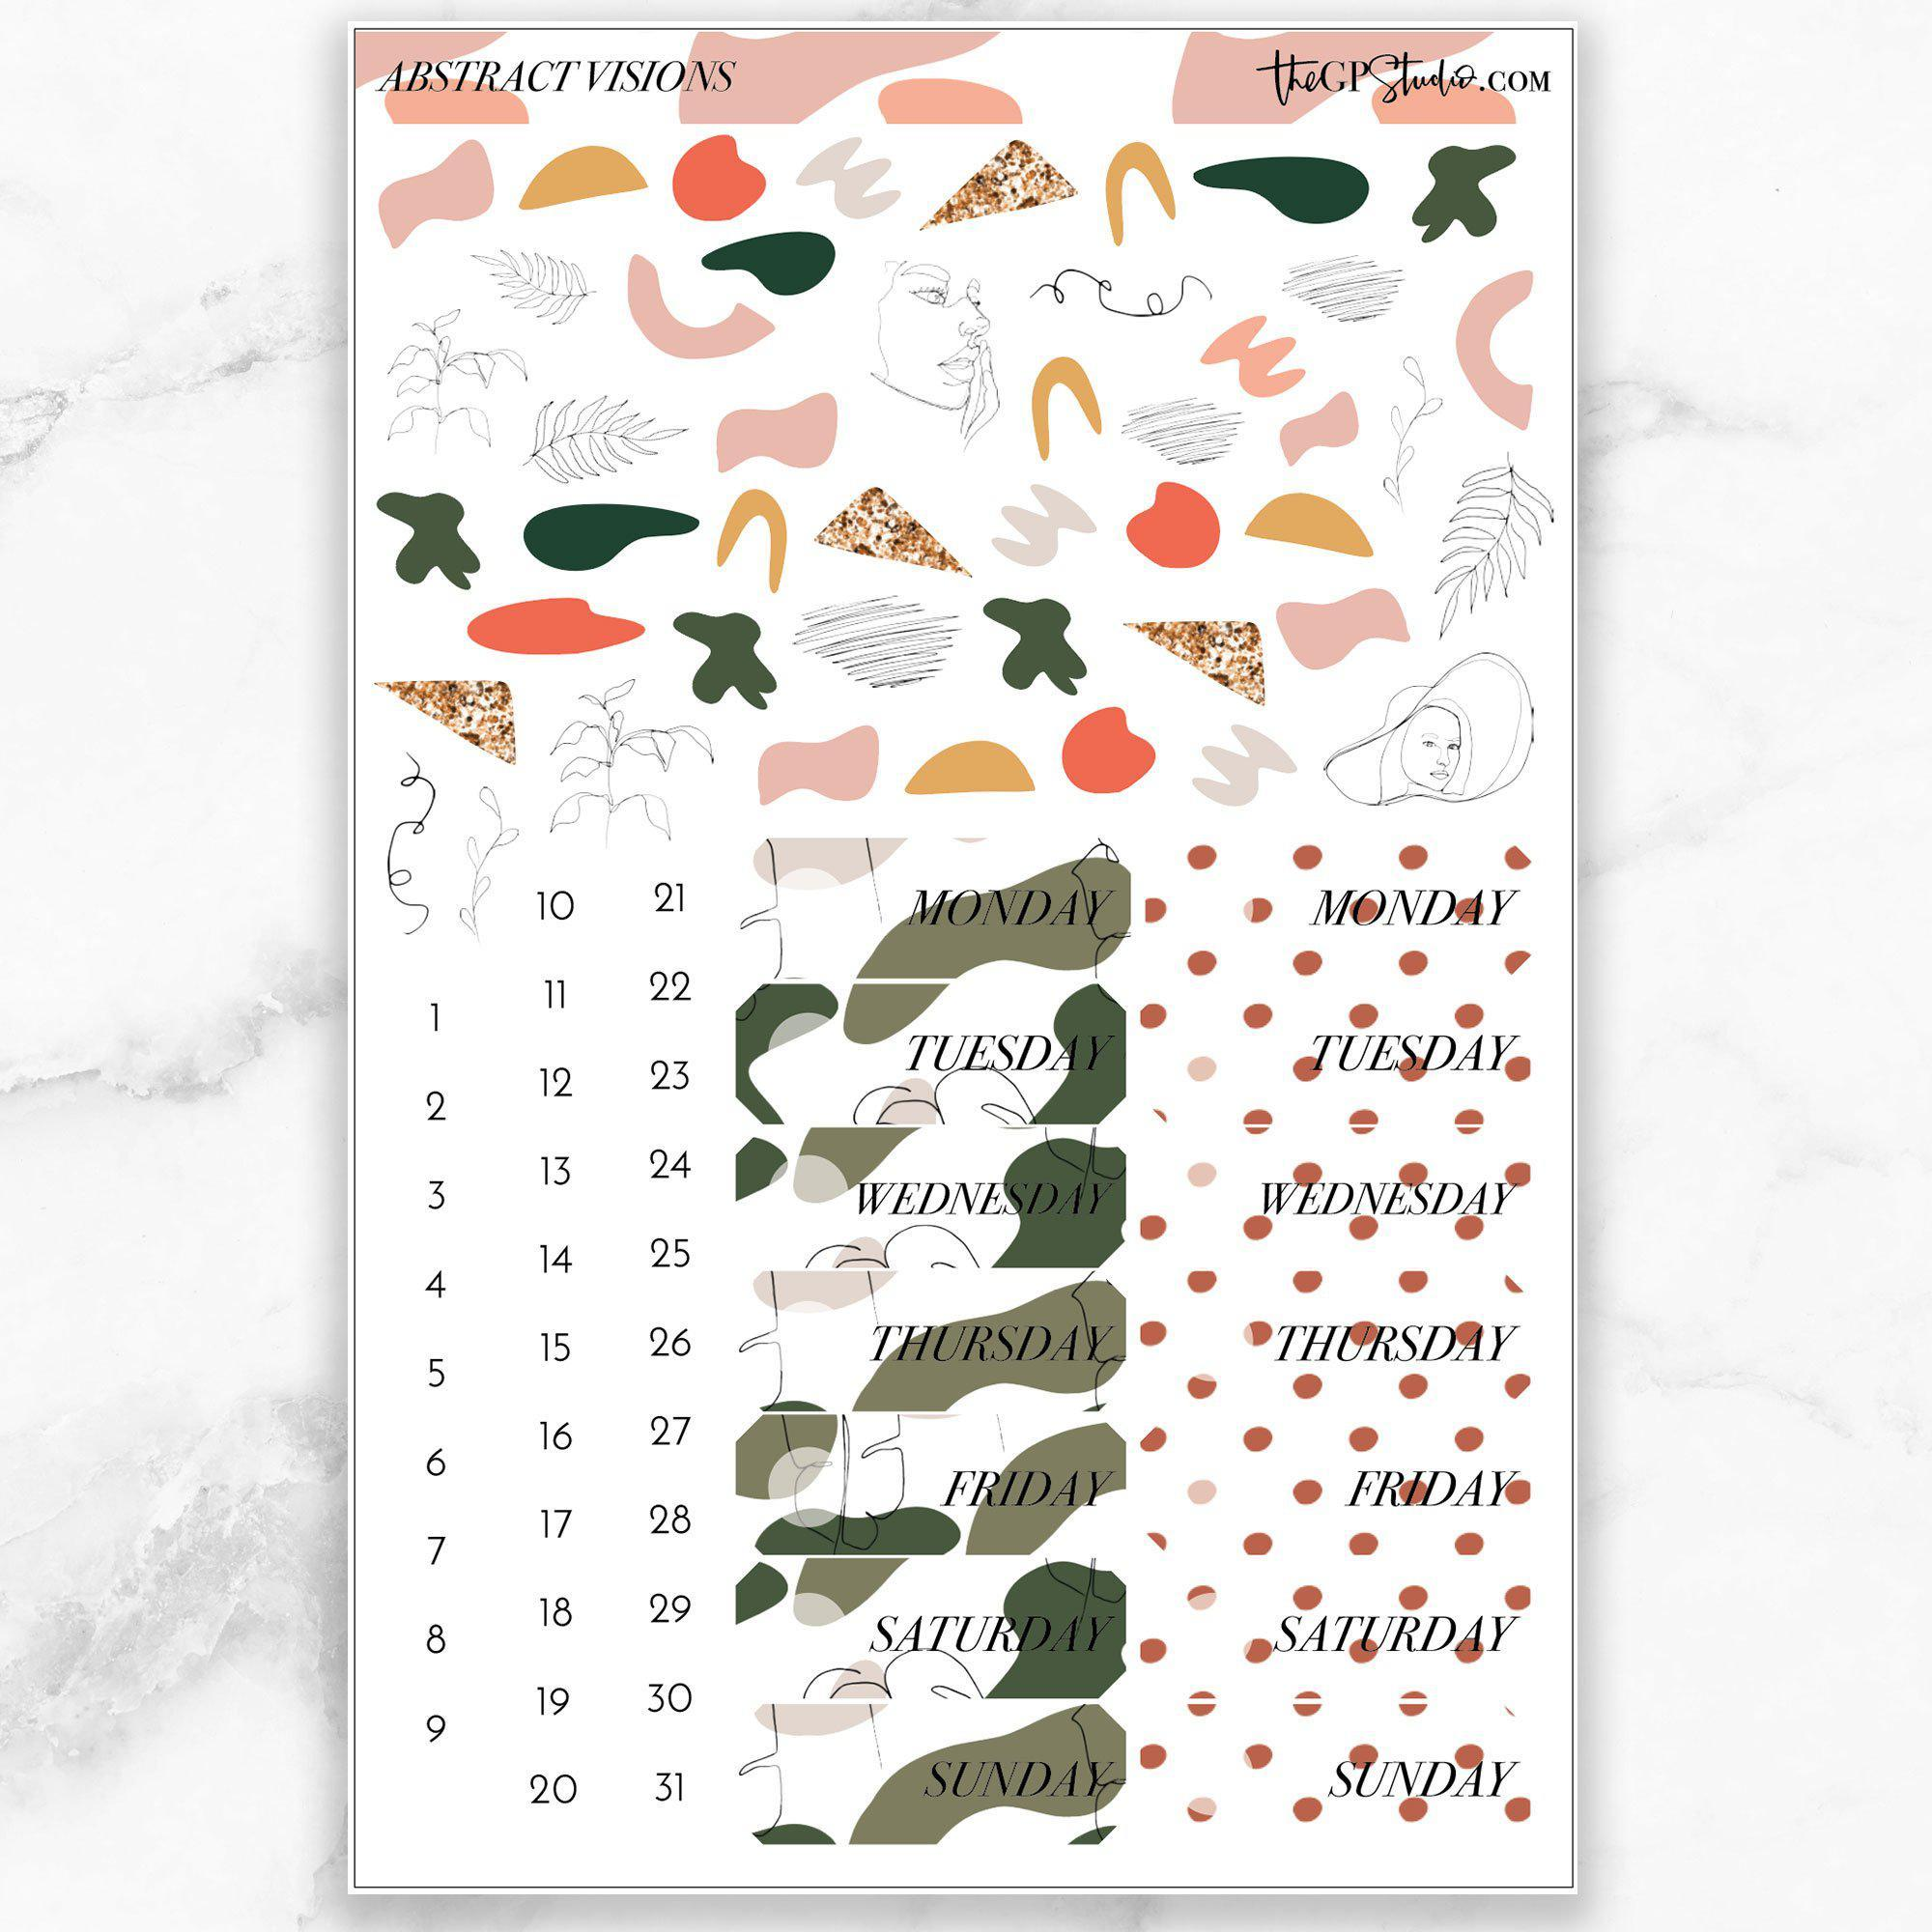 ABSTRACT VISIONS Deco & Date Cover Stickers-The GP Studio